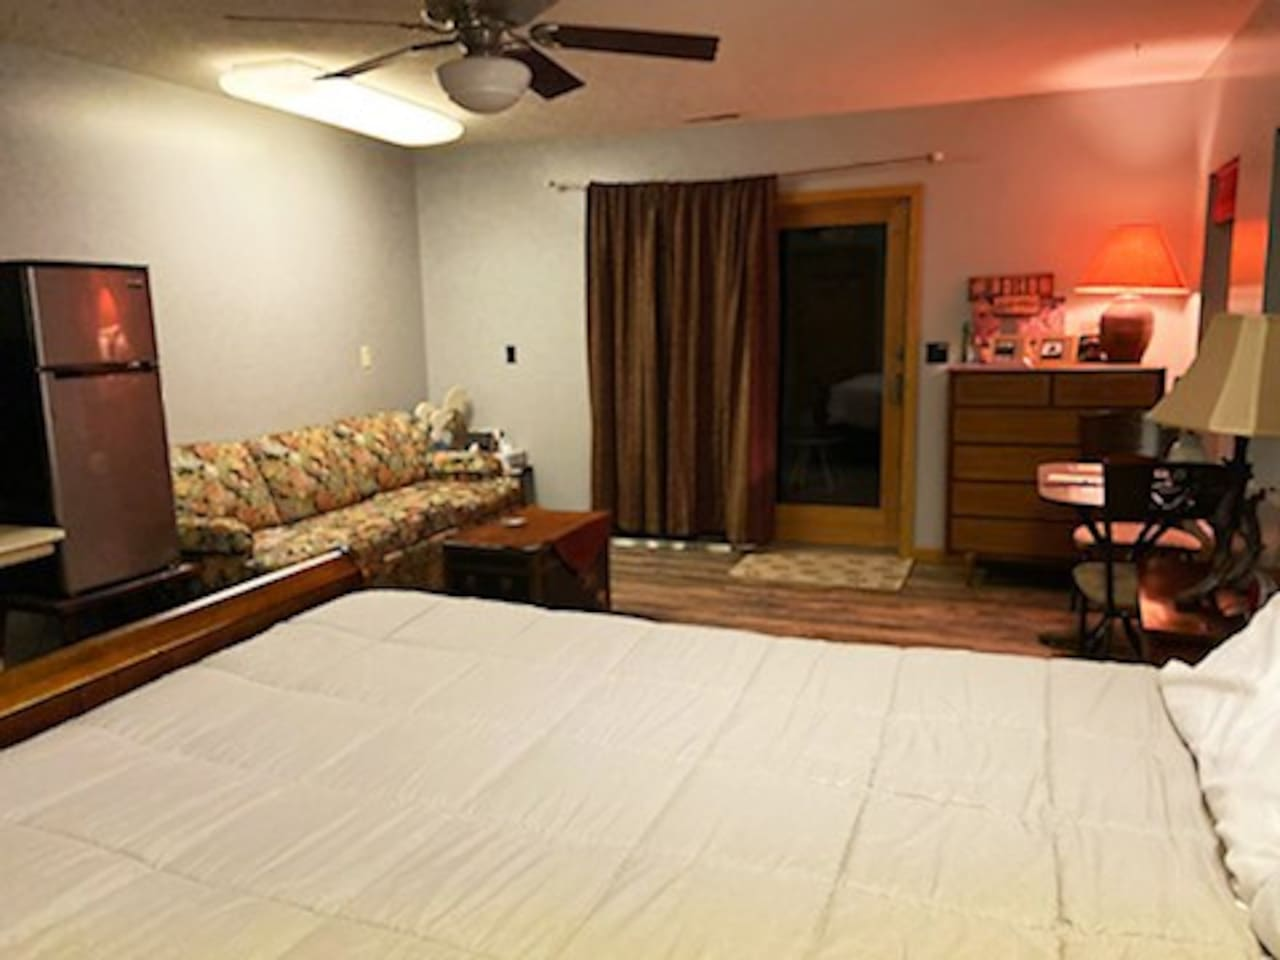 Main guest bedroom w/private entrance, queen size Sleep Number bed, couch refrigerator, microwave, coffee maker, and table for two.